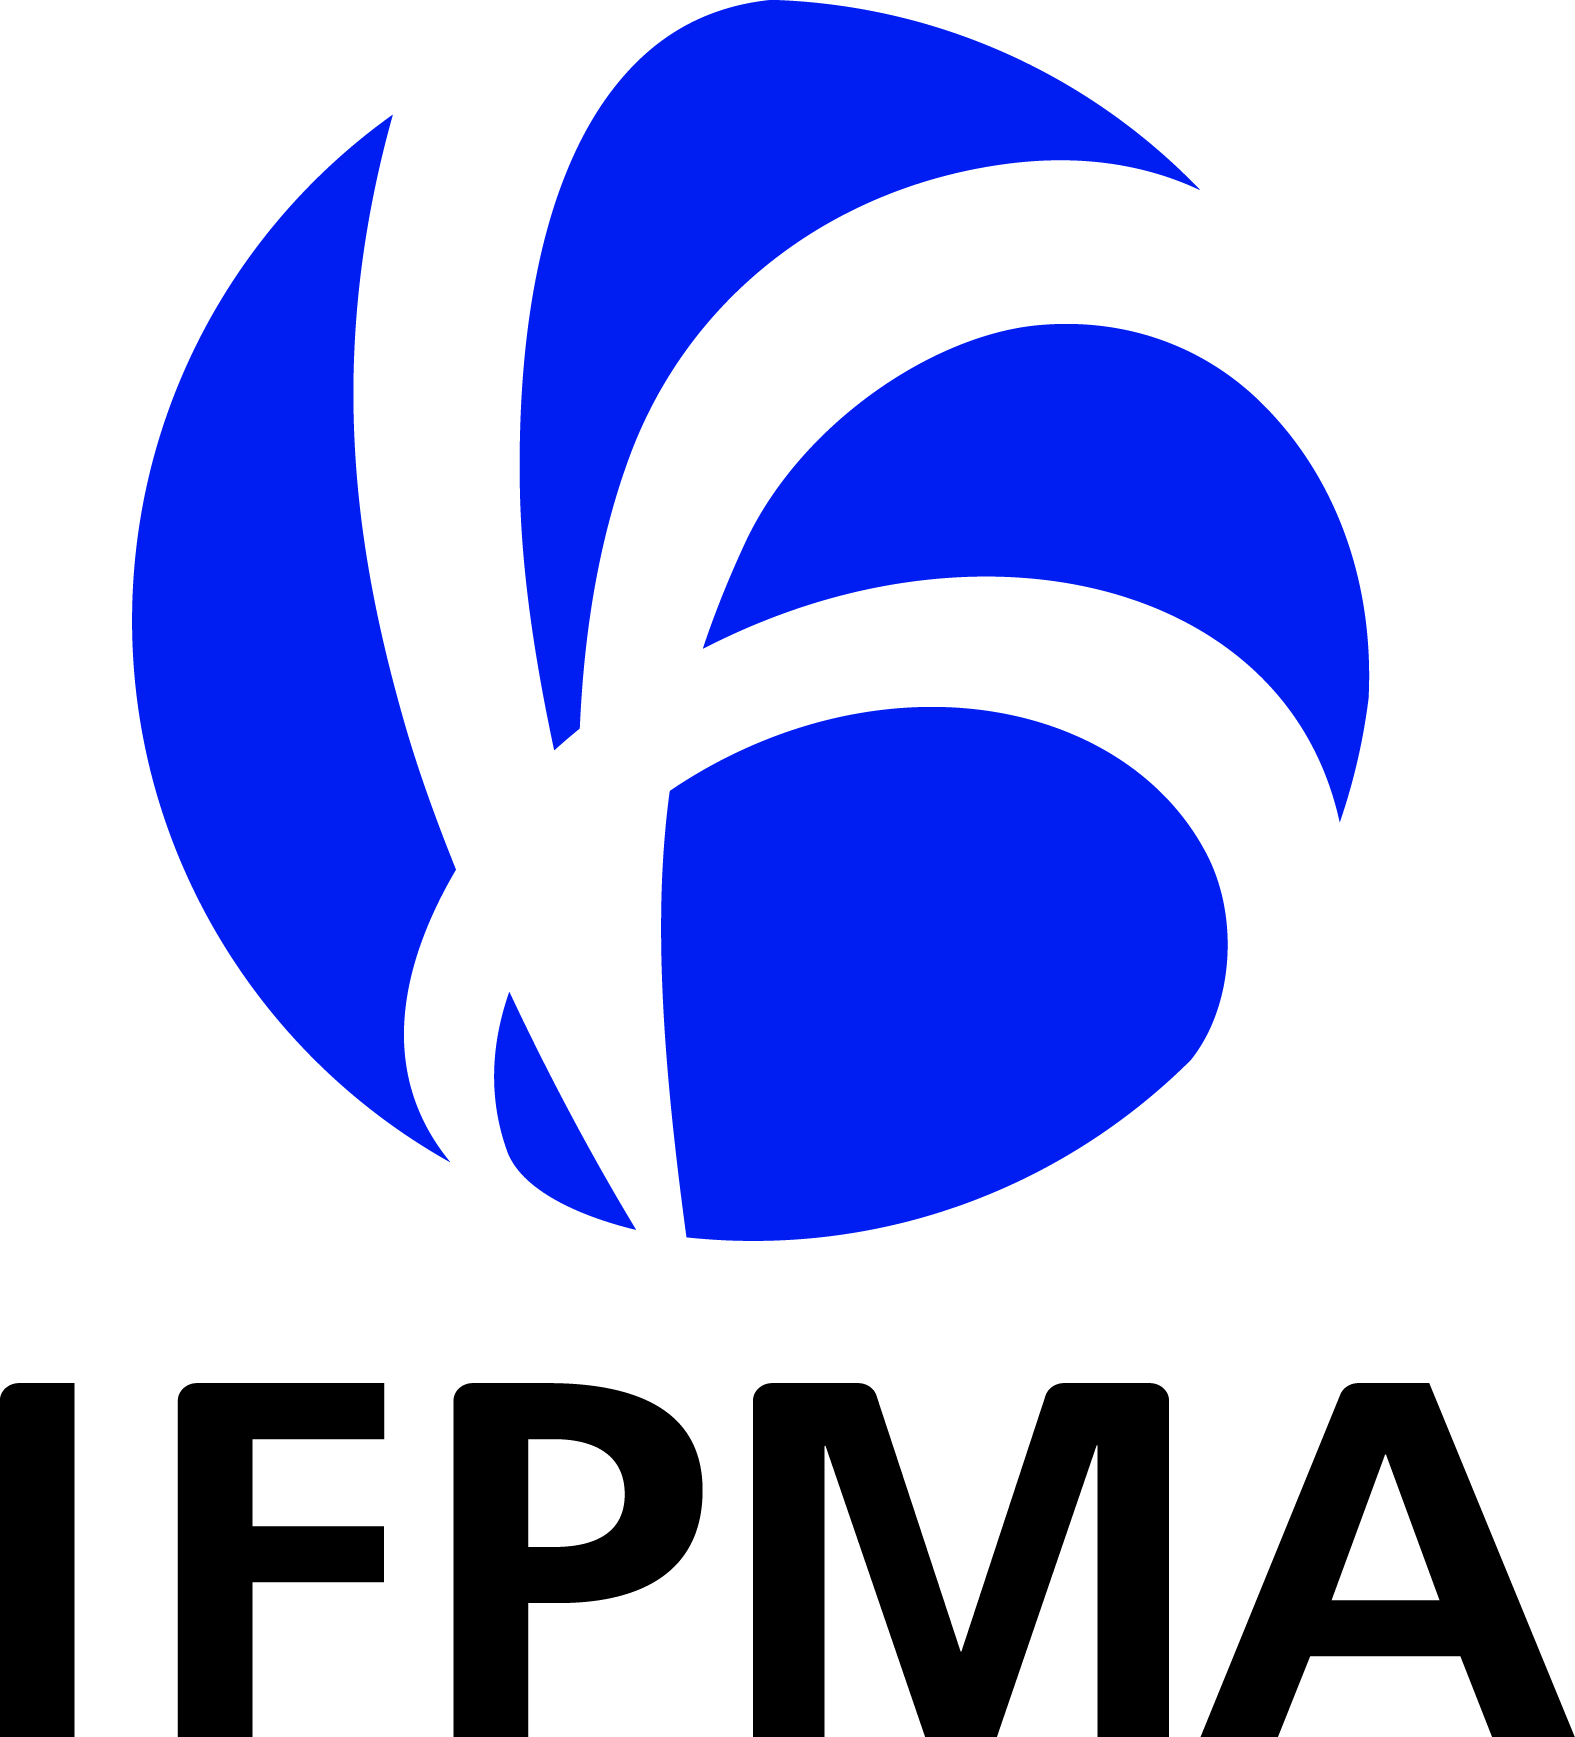 International Federation of Pharmaceutical Manufacturers